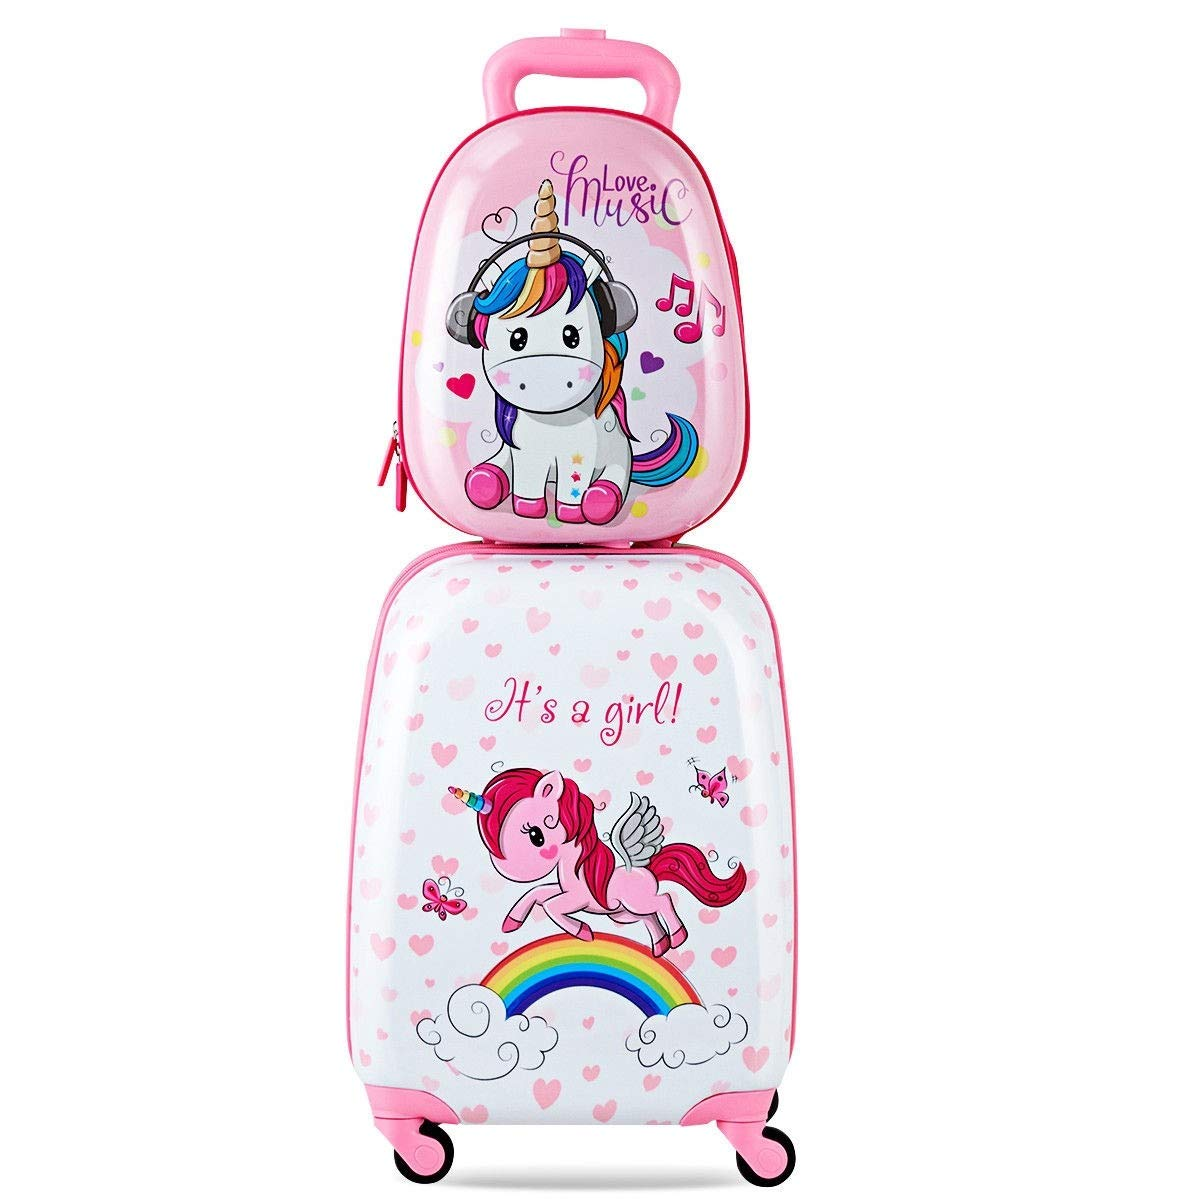 Custpromo 2 pcs ABS Kids Suitcase Lightweight Backpack Luggage Set 16'' Carry On Luggage with Spinner Wheels and 12'' Backpacks Set for 2, 3, 4 year olds (Unicorn)